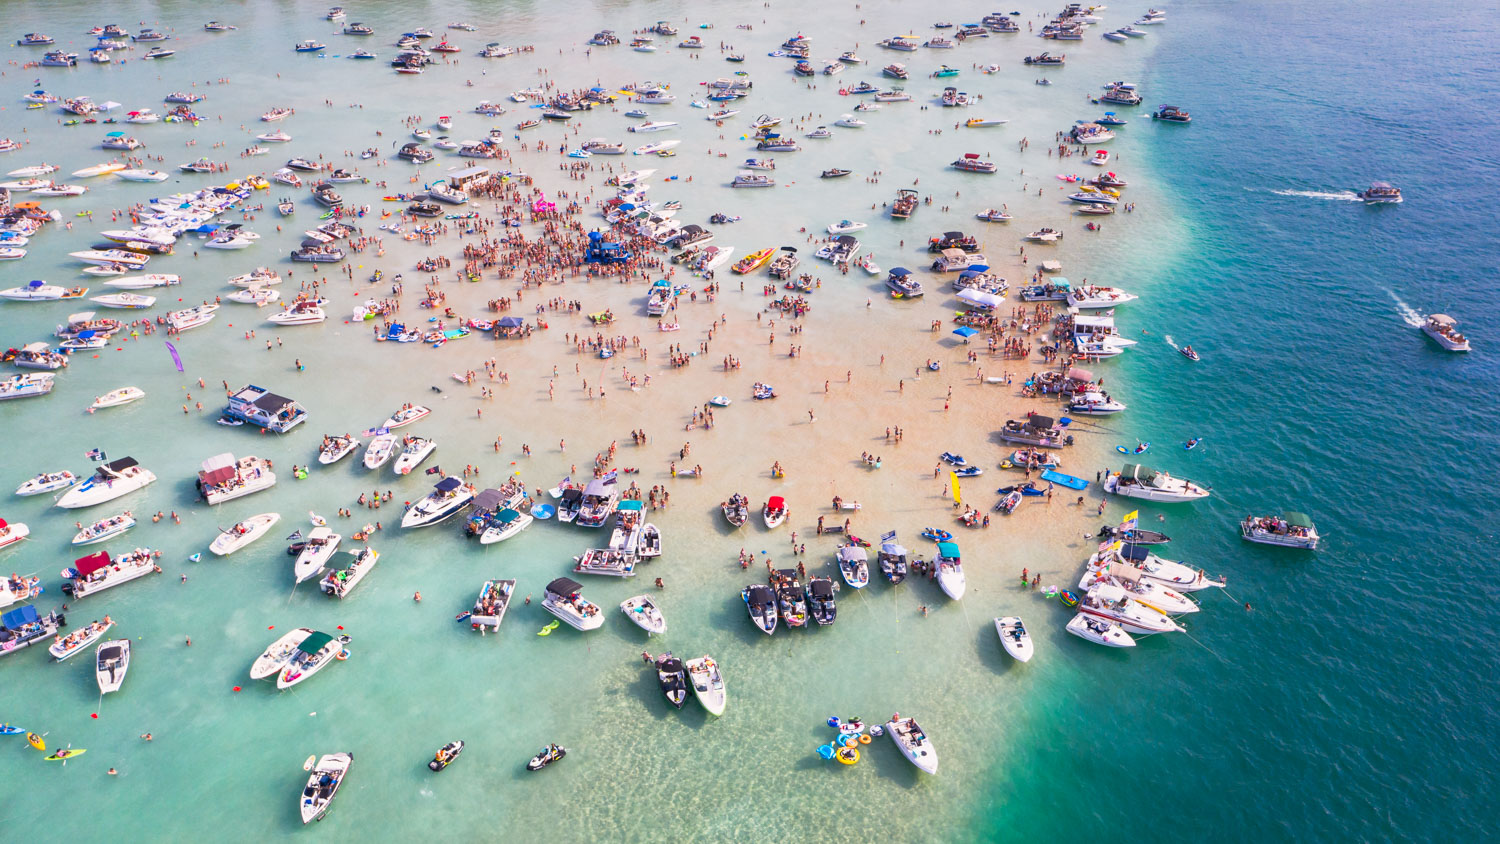 Aerial view of Torch Lake in Northern Michigan